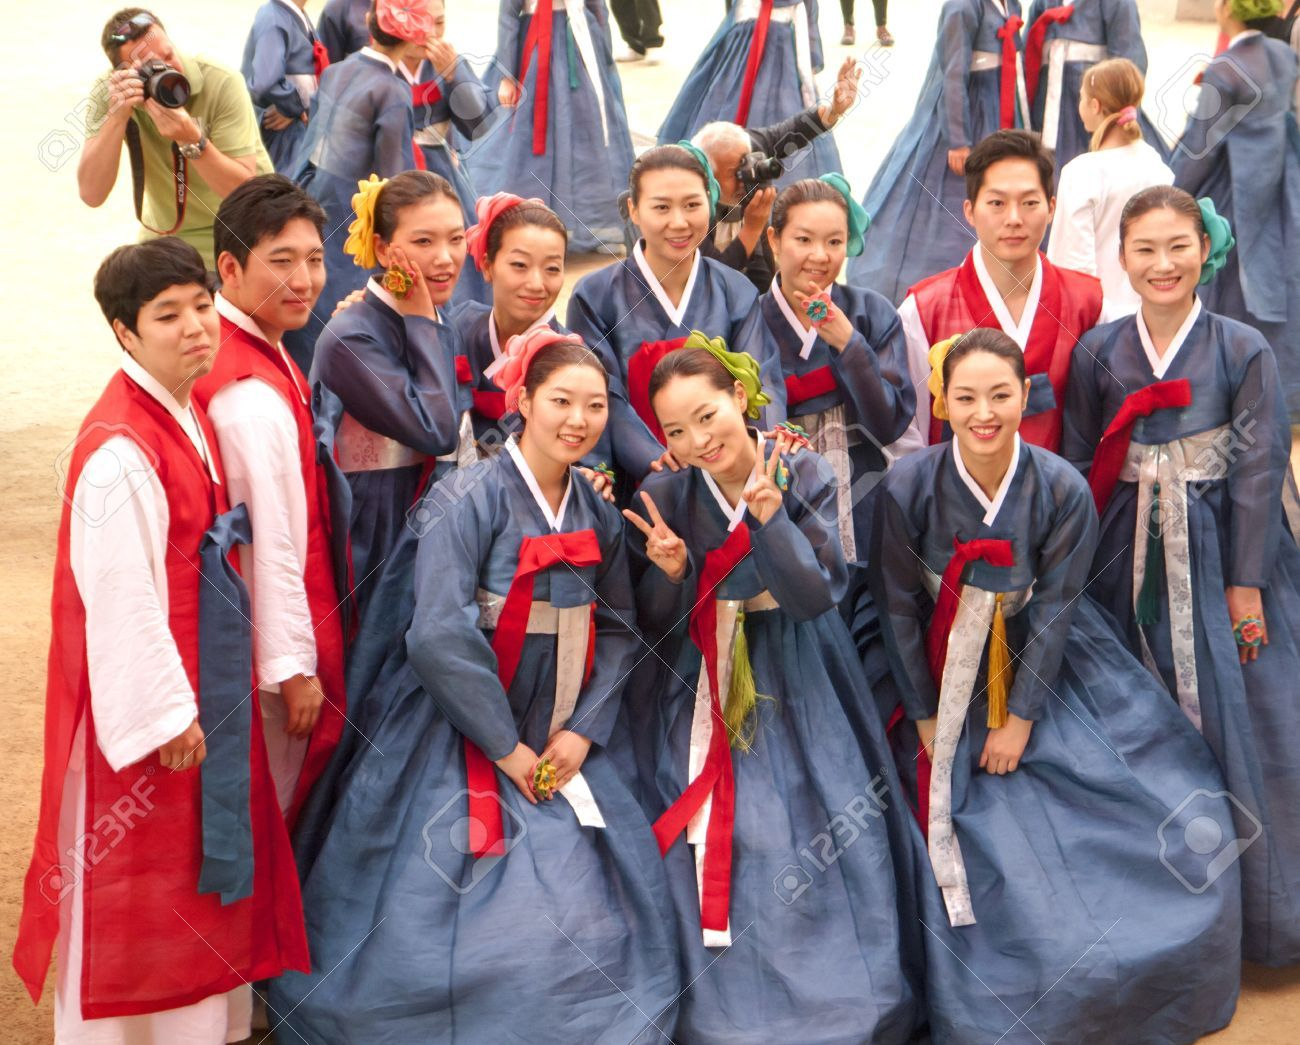 south korea culture Home new posting  cultural etiquette: south korea: the people korea is one of the most homogeneous countries in the world, racially and linguistically it has its own culture, language, dress and cuisine, separate and distinct from its neighboring countries.